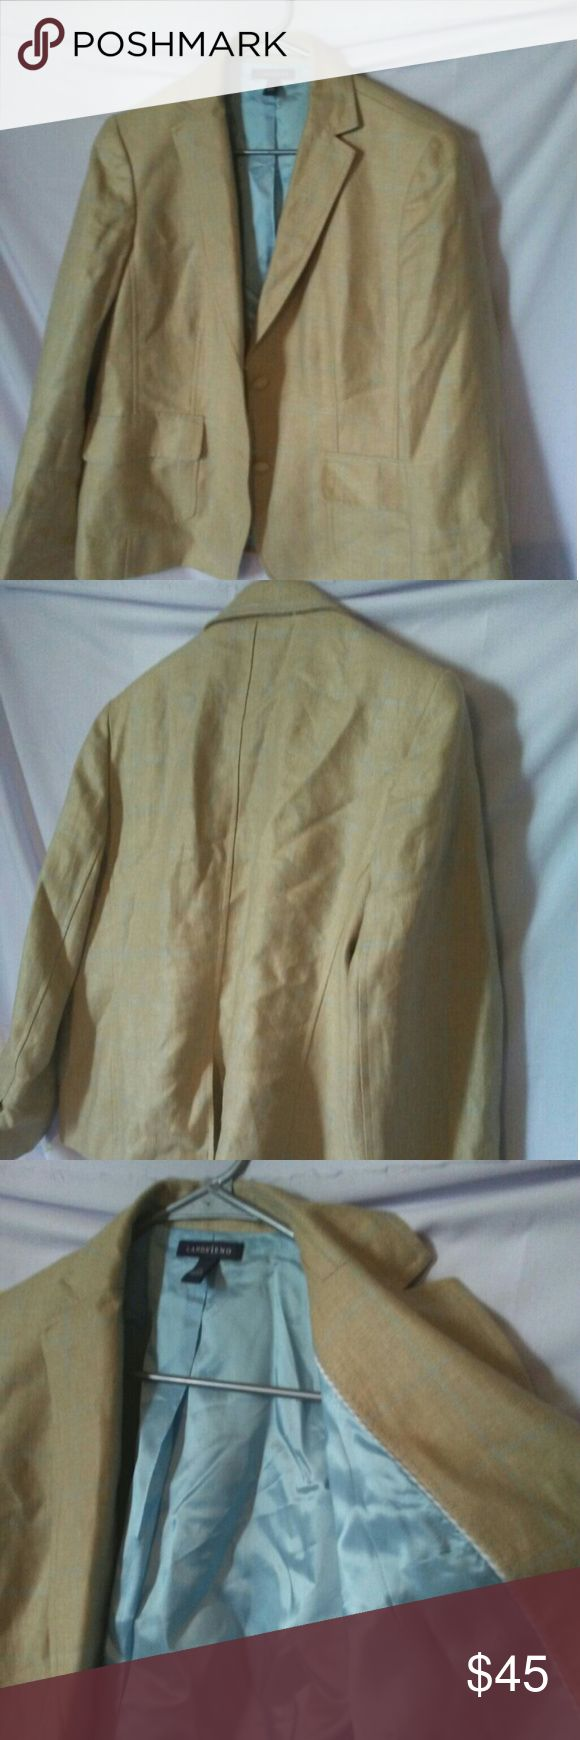 Ladies Wool Work Blazer with Light Blue Lining Tan wool work blazer with light blue lining.   This coat has a brown and blue plaid pattern with tan buttons and a light blue lining.   In great condition! Will be ironed before shipping. Lands' End Jackets & Coats Blazers